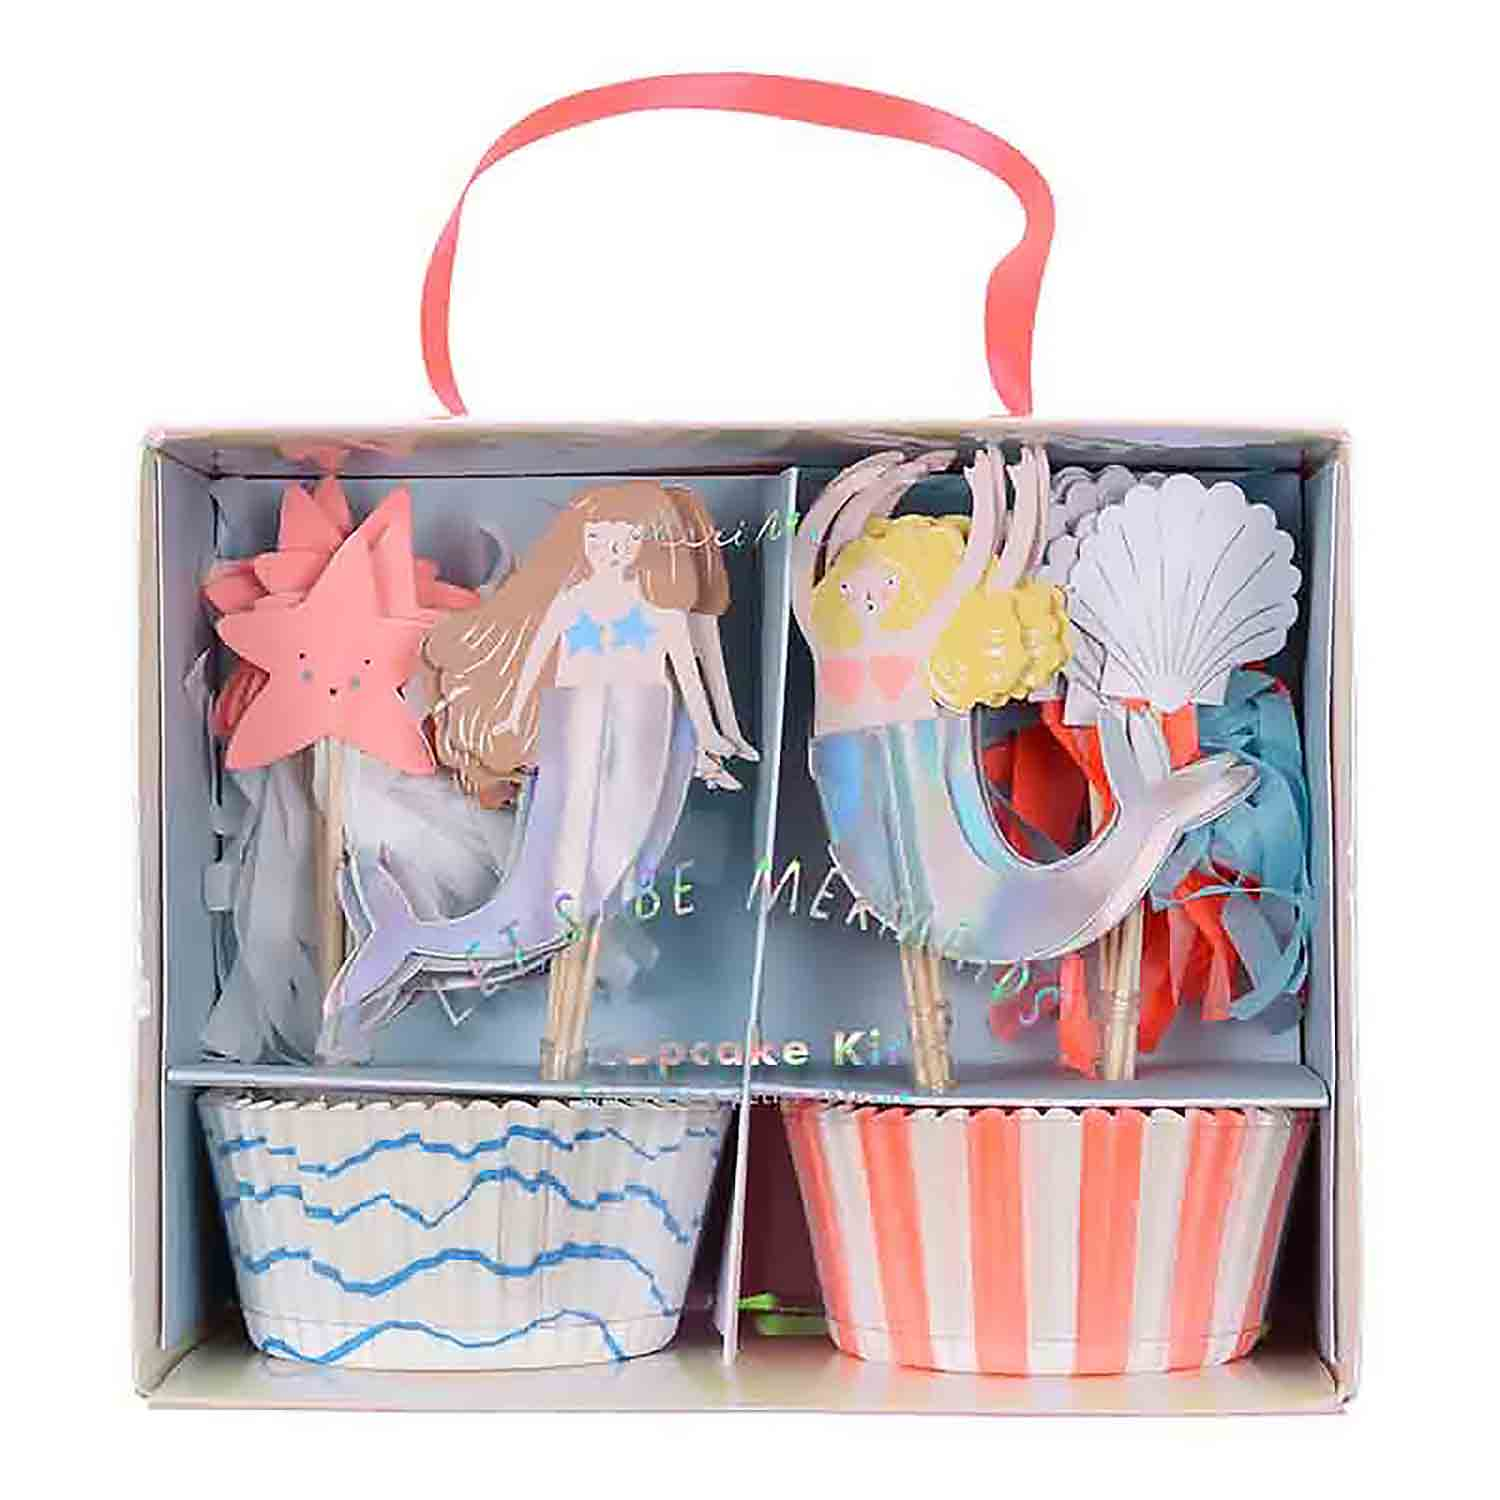 Mermaids Cupcake Kit